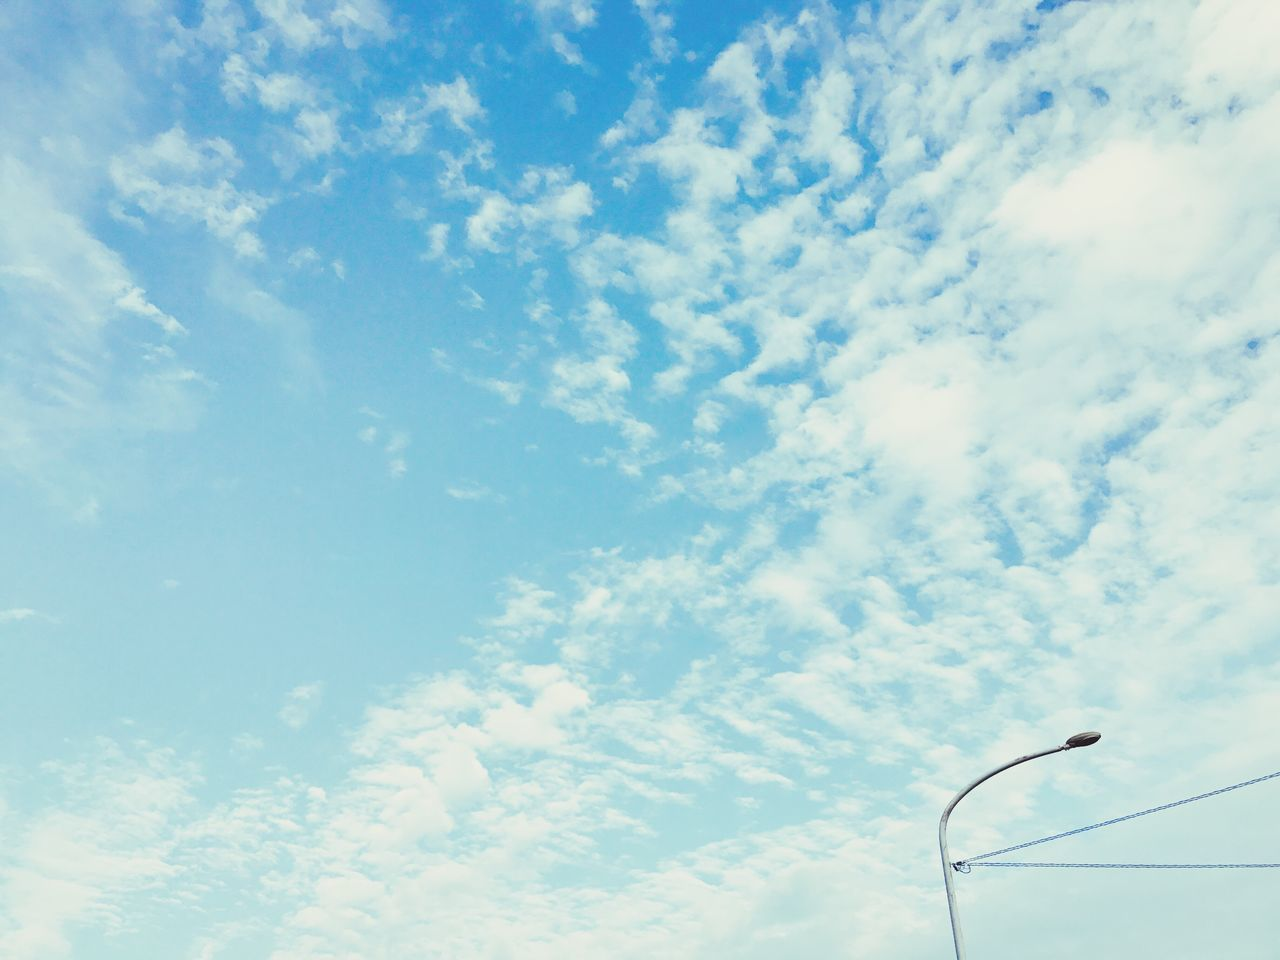 sky, cloud - sky, low angle view, no people, nature, day, beauty in nature, scenics, outdoors